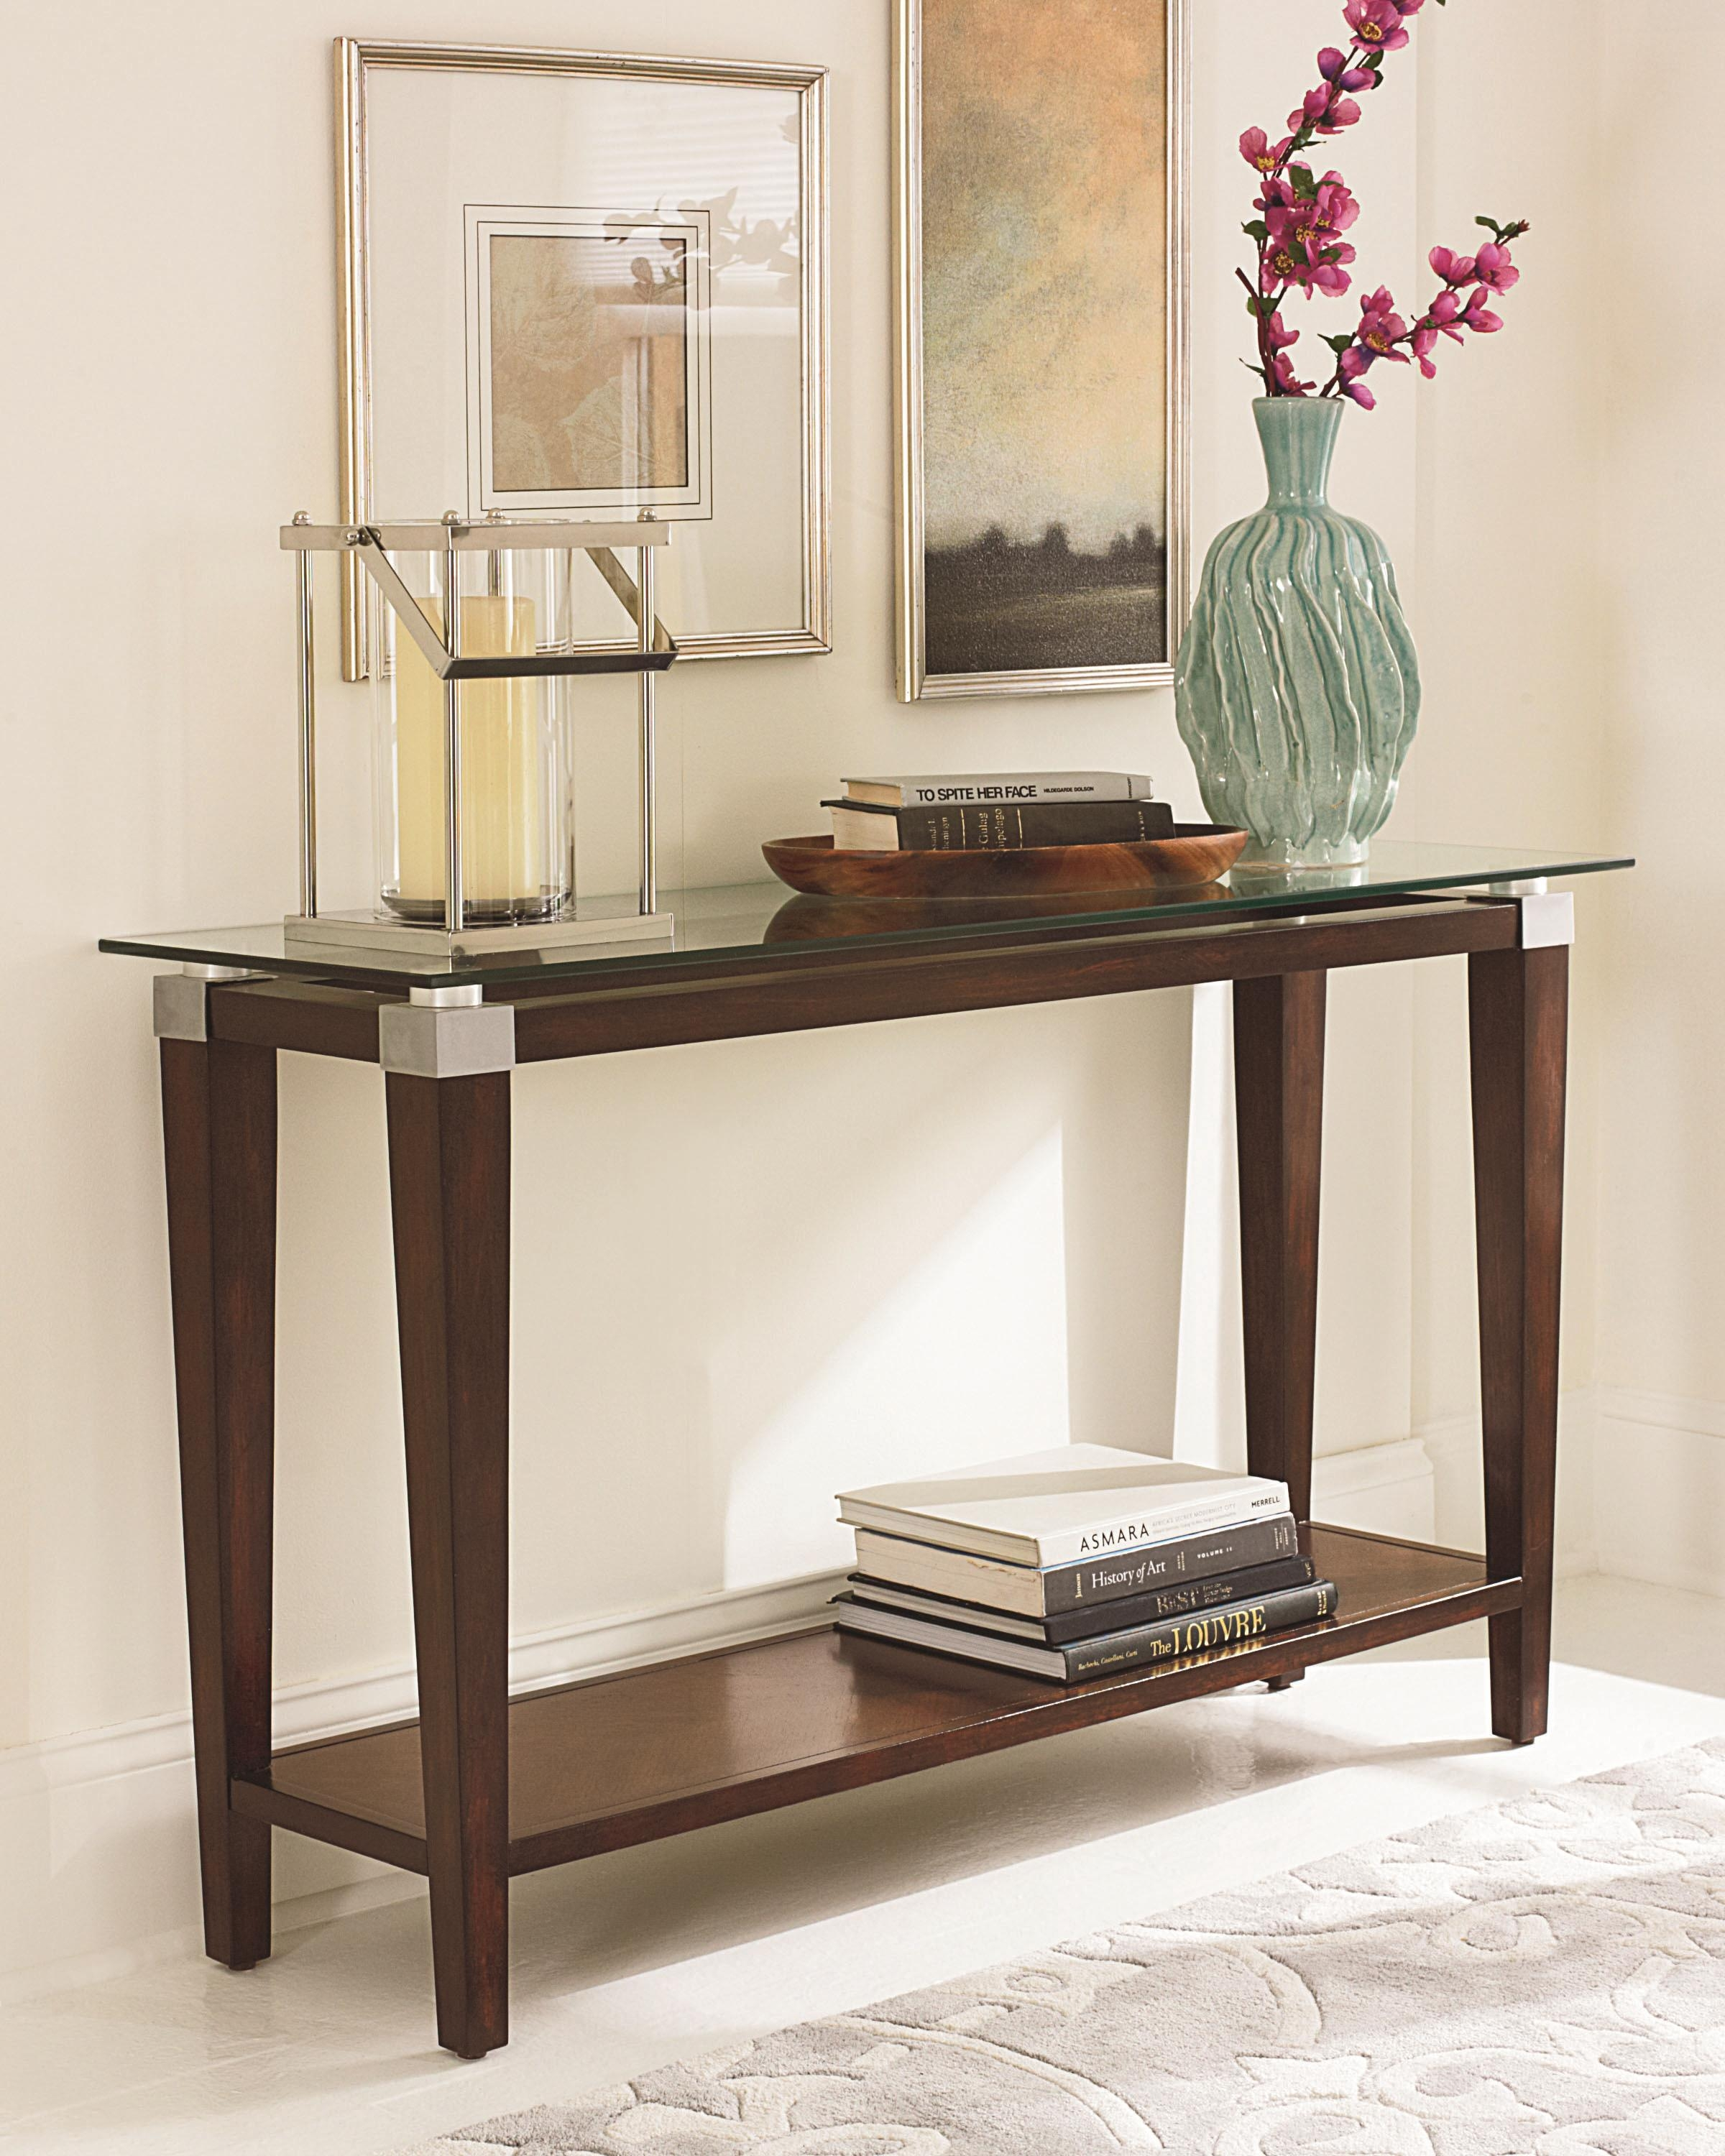 Contemporary Sofa Table With Glass Tophammary | Wolf And Within Metal Glass Sofa Tables (View 9 of 22)